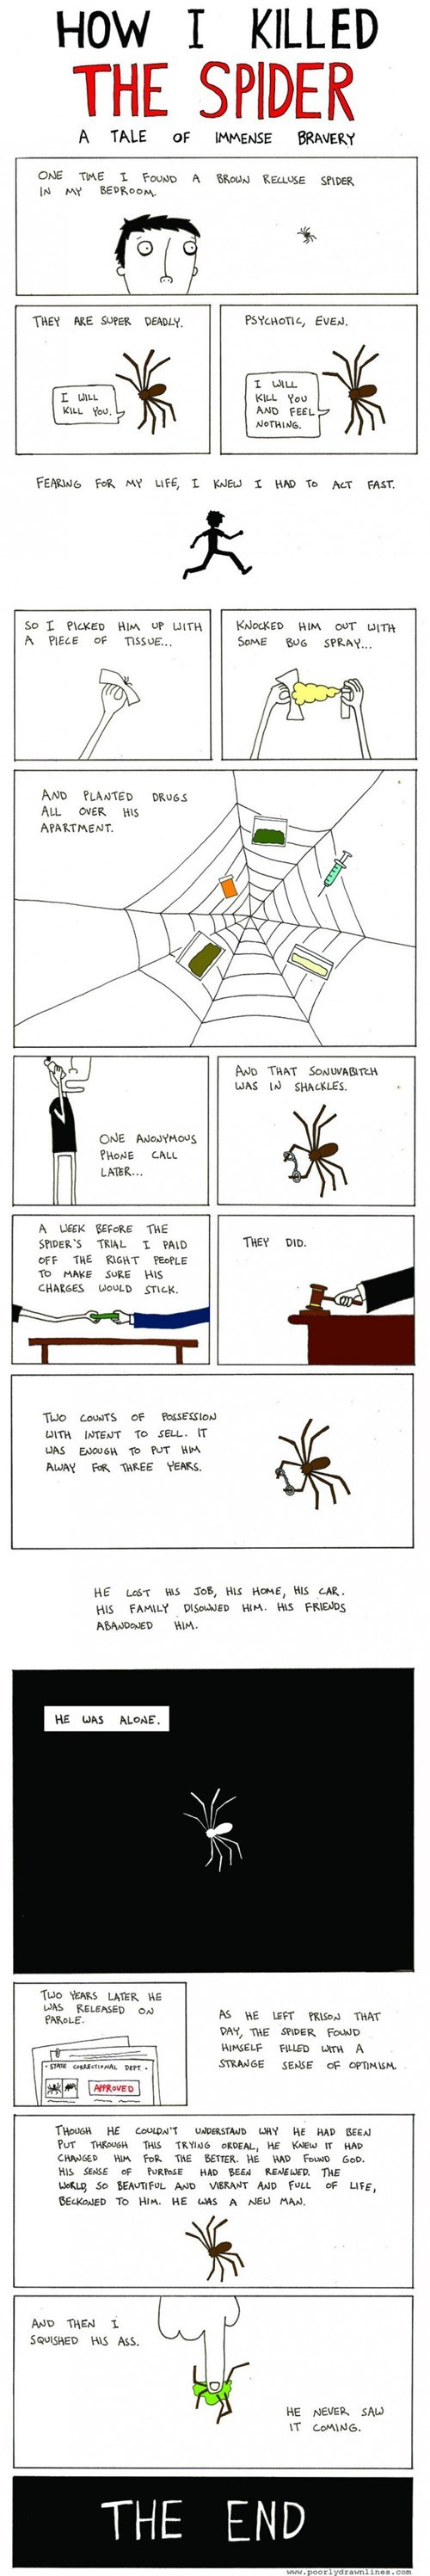 The Best Way to Deal With Spiders